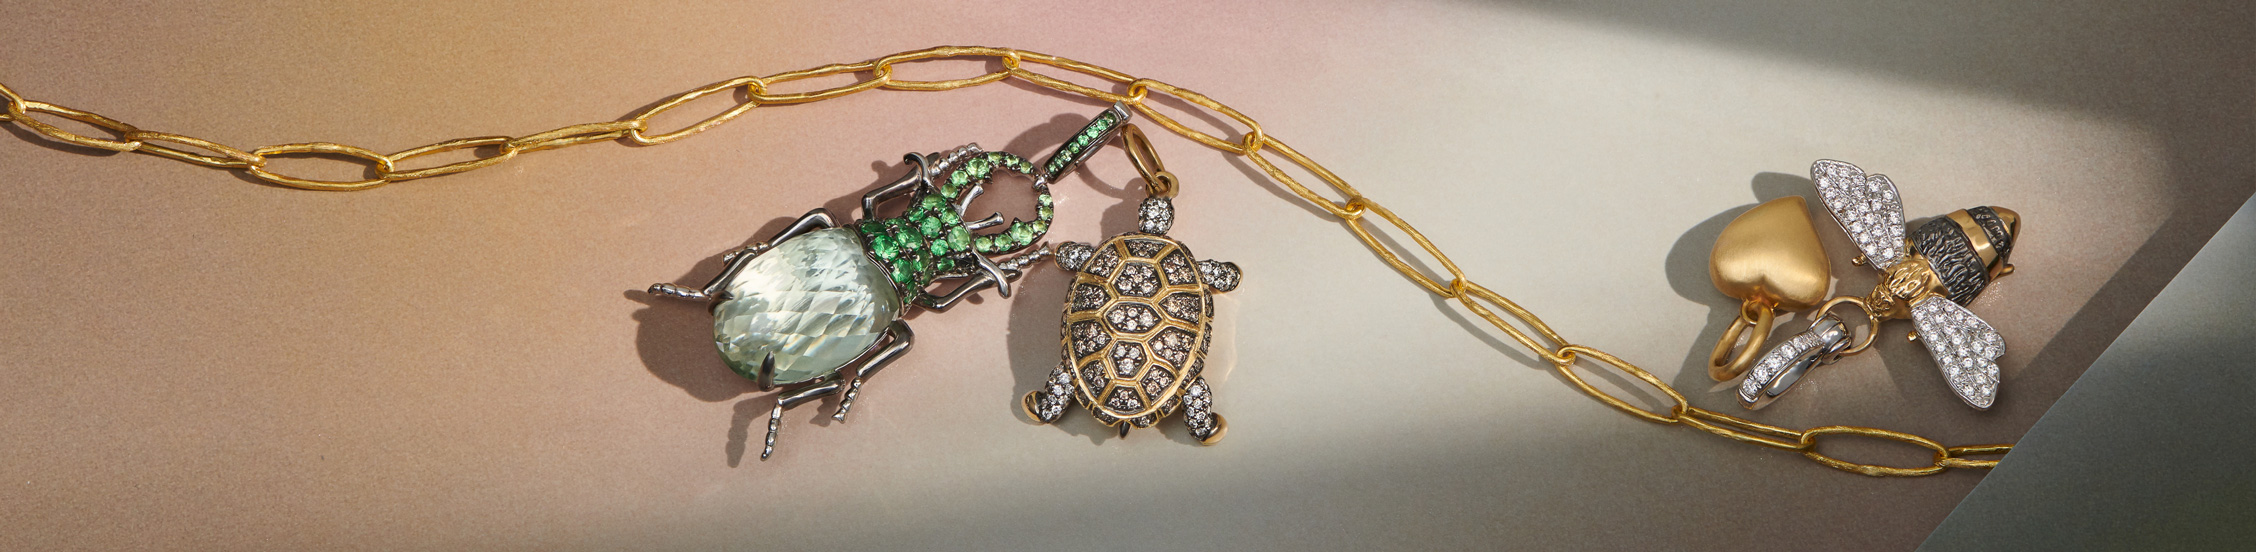 Annoushka Charms & Pendants